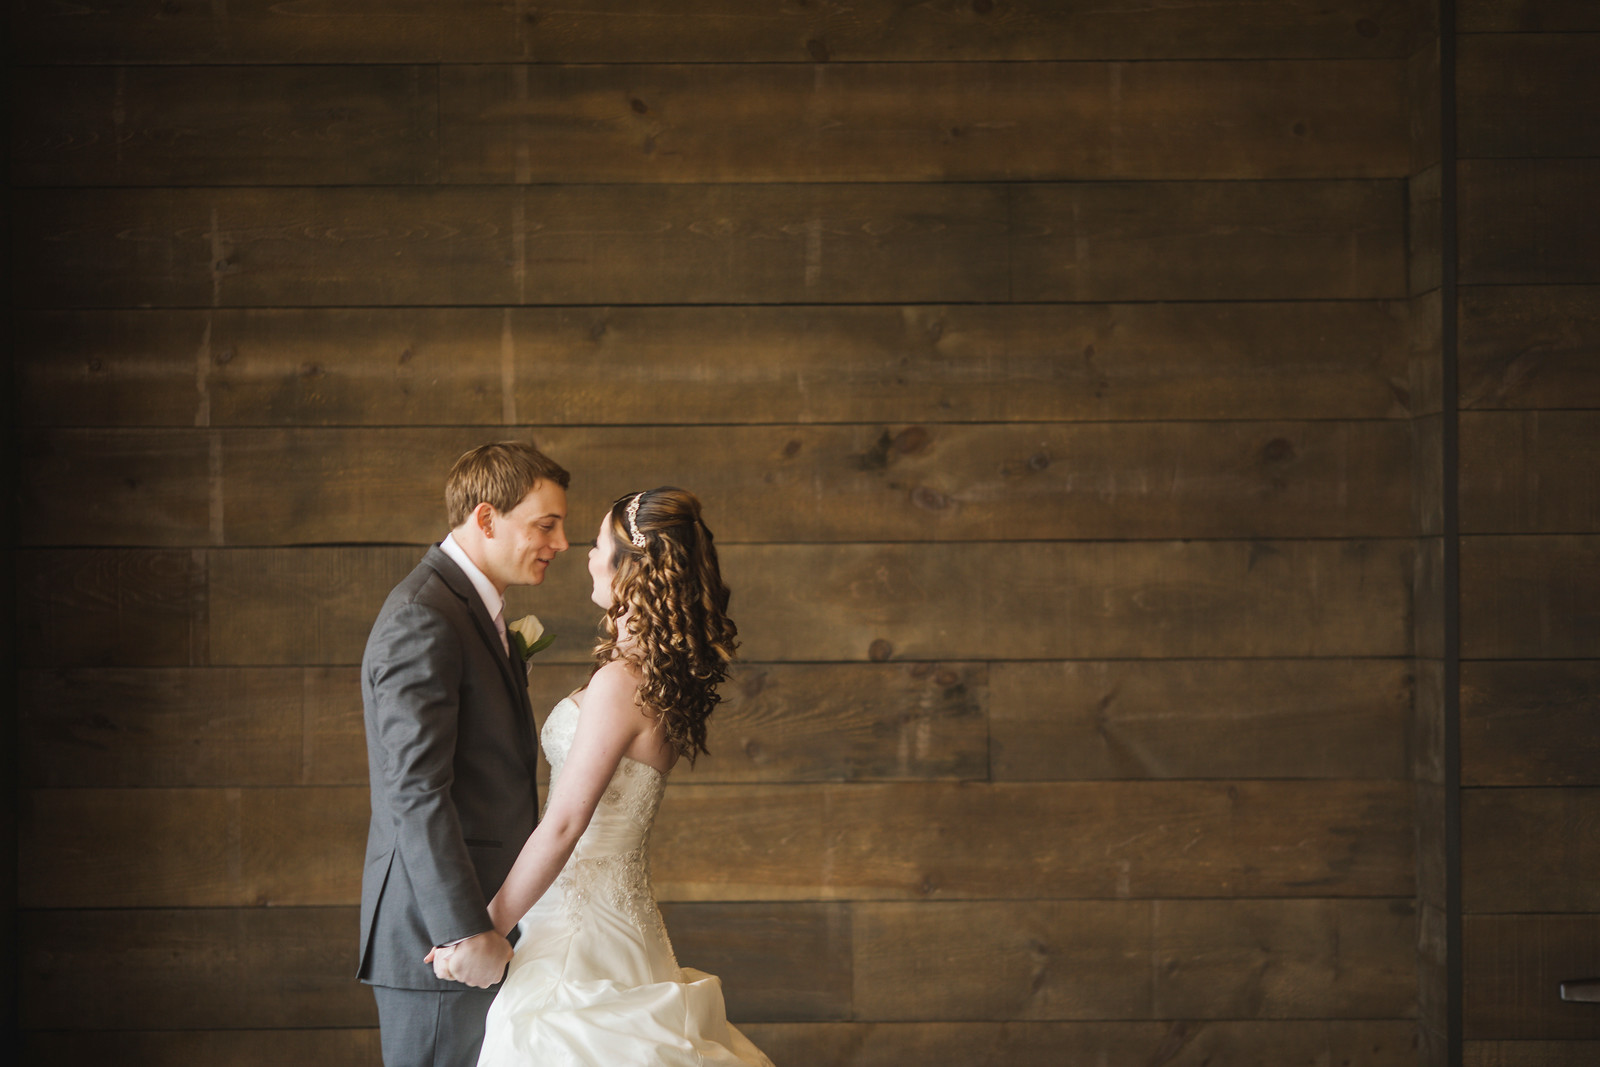 Montana + Jon at The Ridge (April 8, 2017)